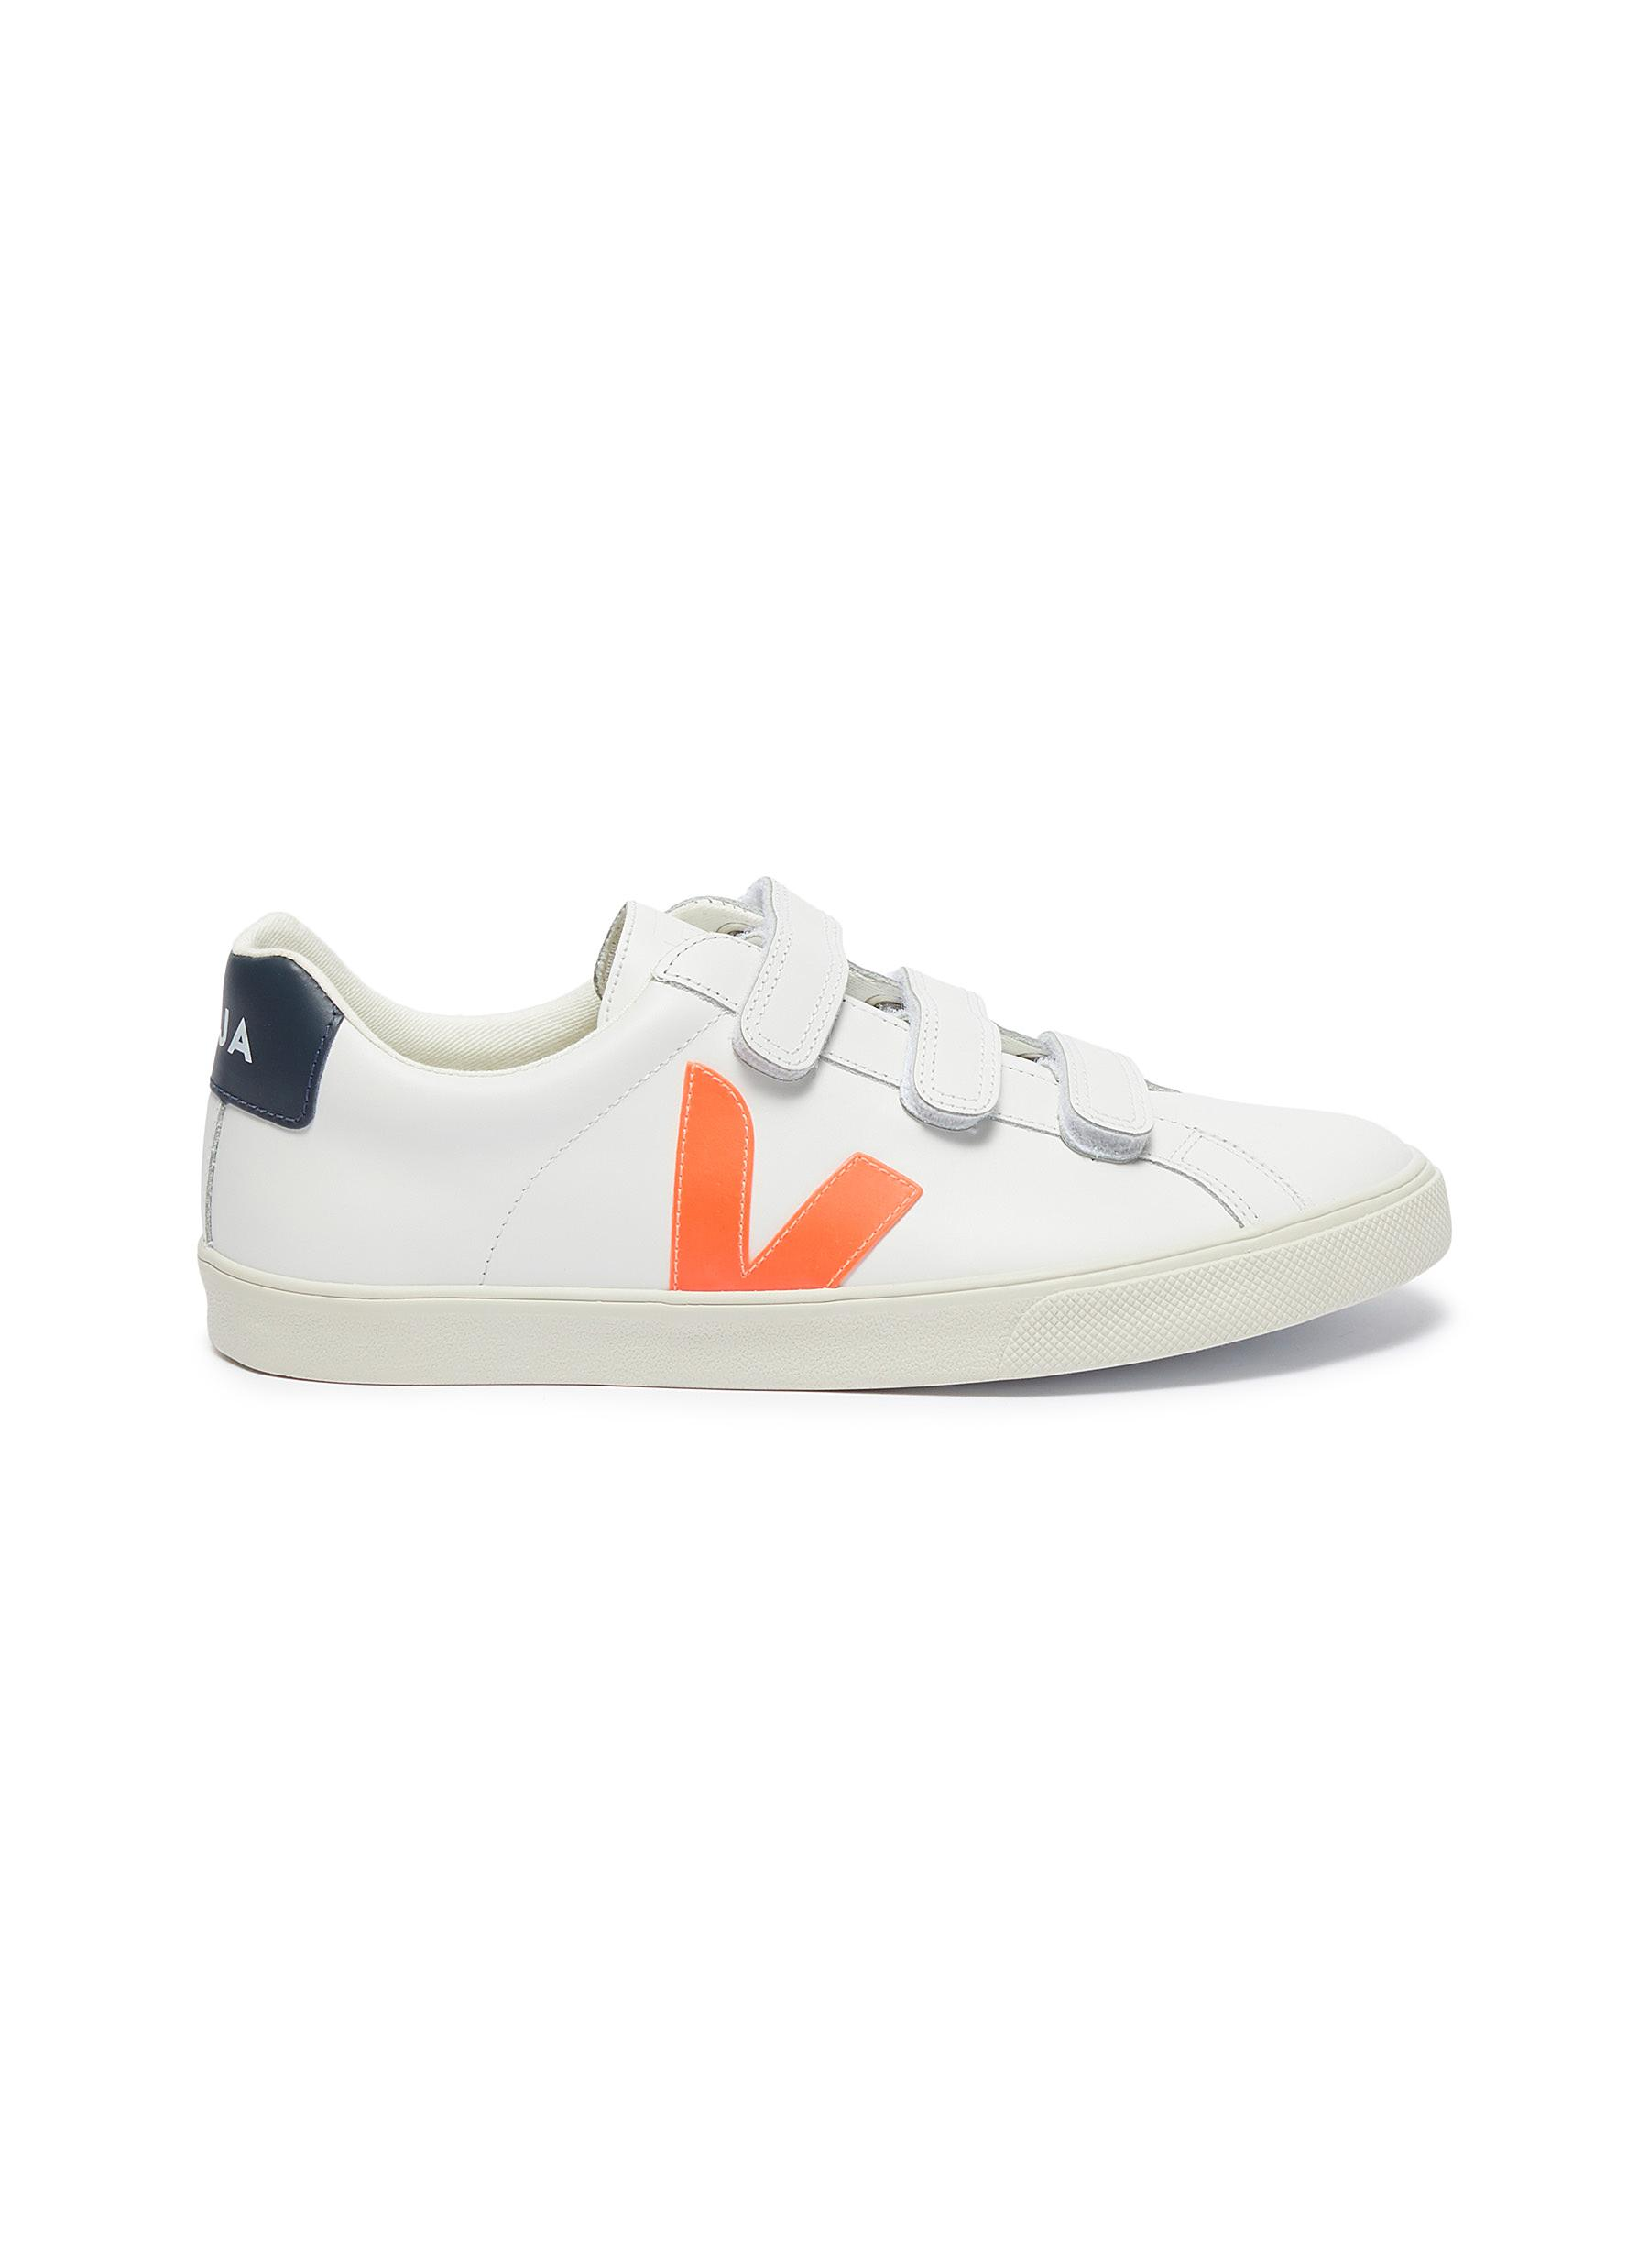 3-Lock Logo leather sneakers by Veja